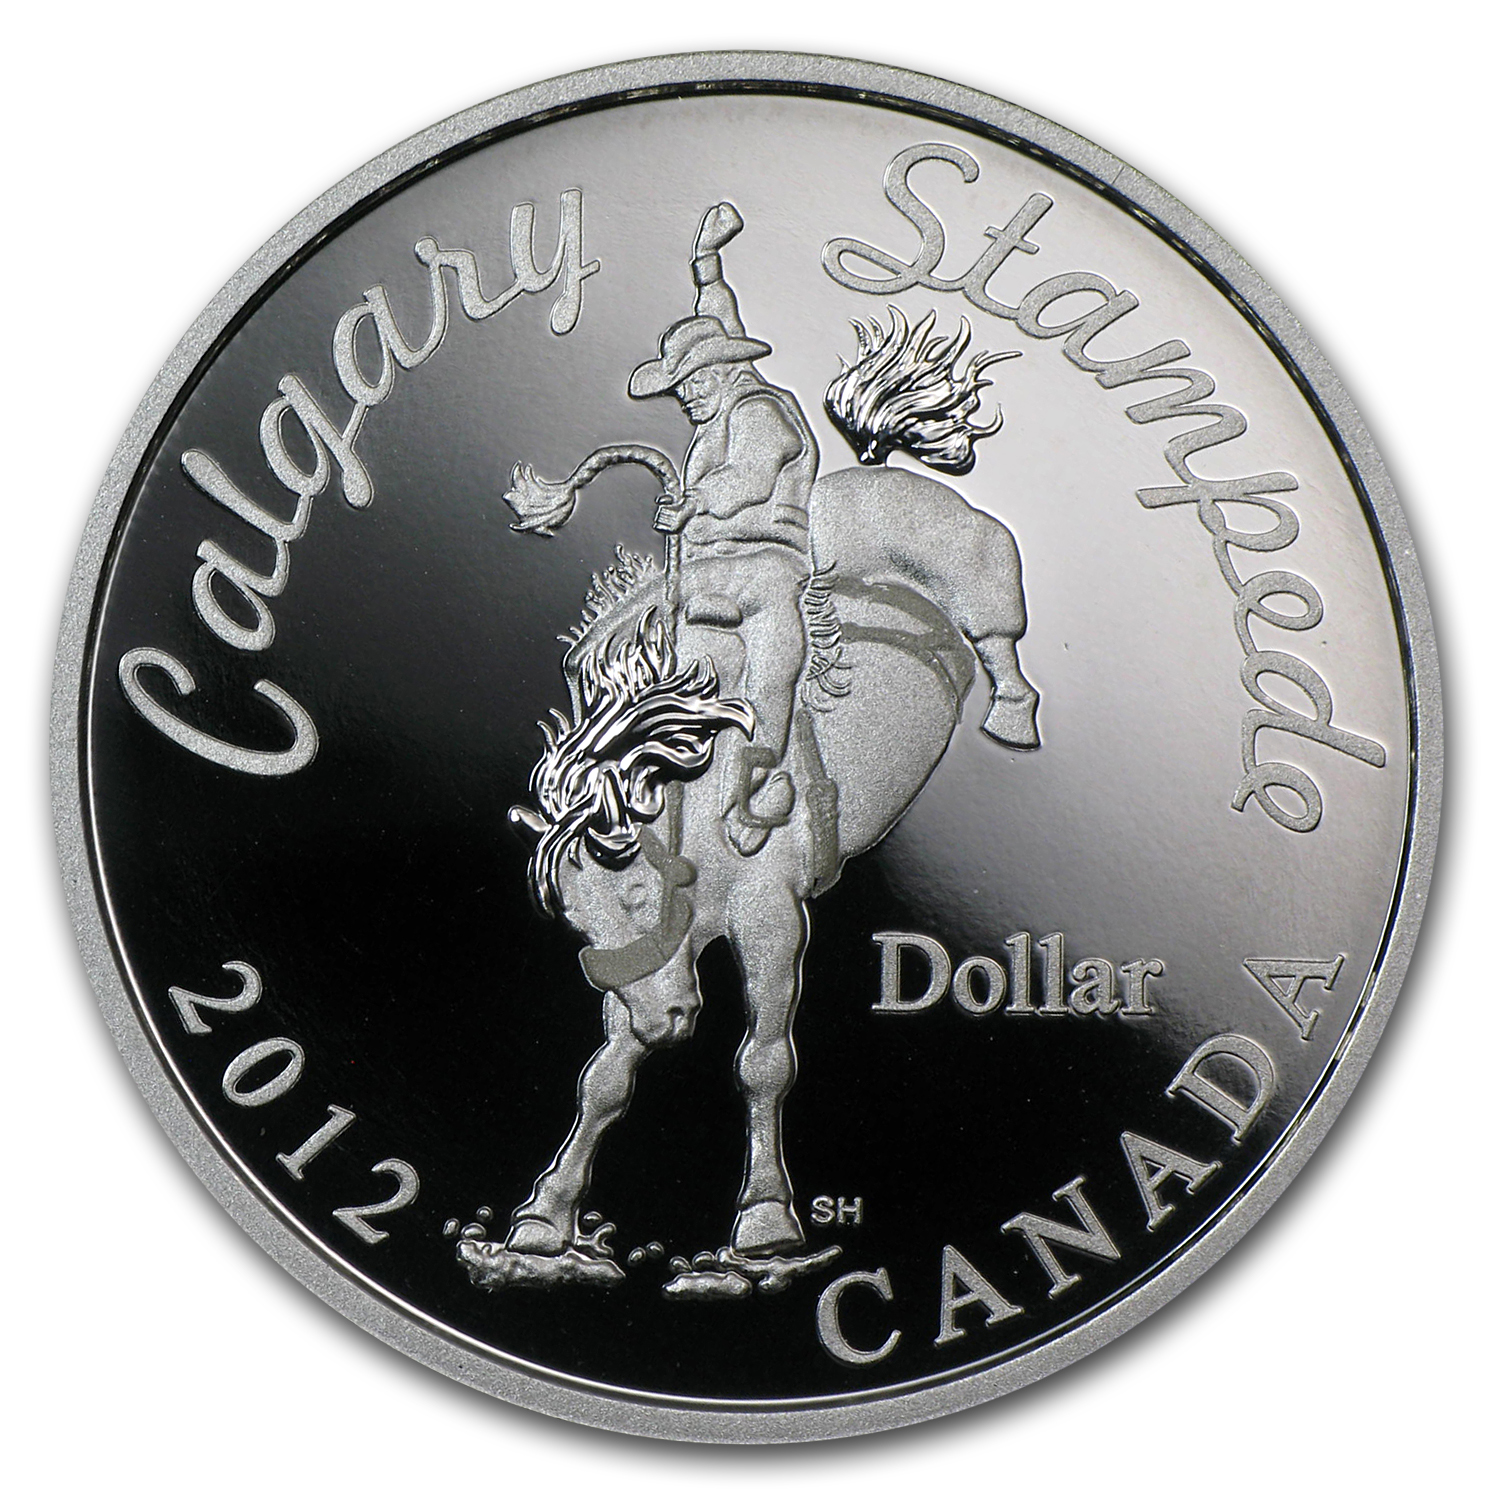 2012 Silver Canadian $1 Calgary Stampede Bucking Bronco